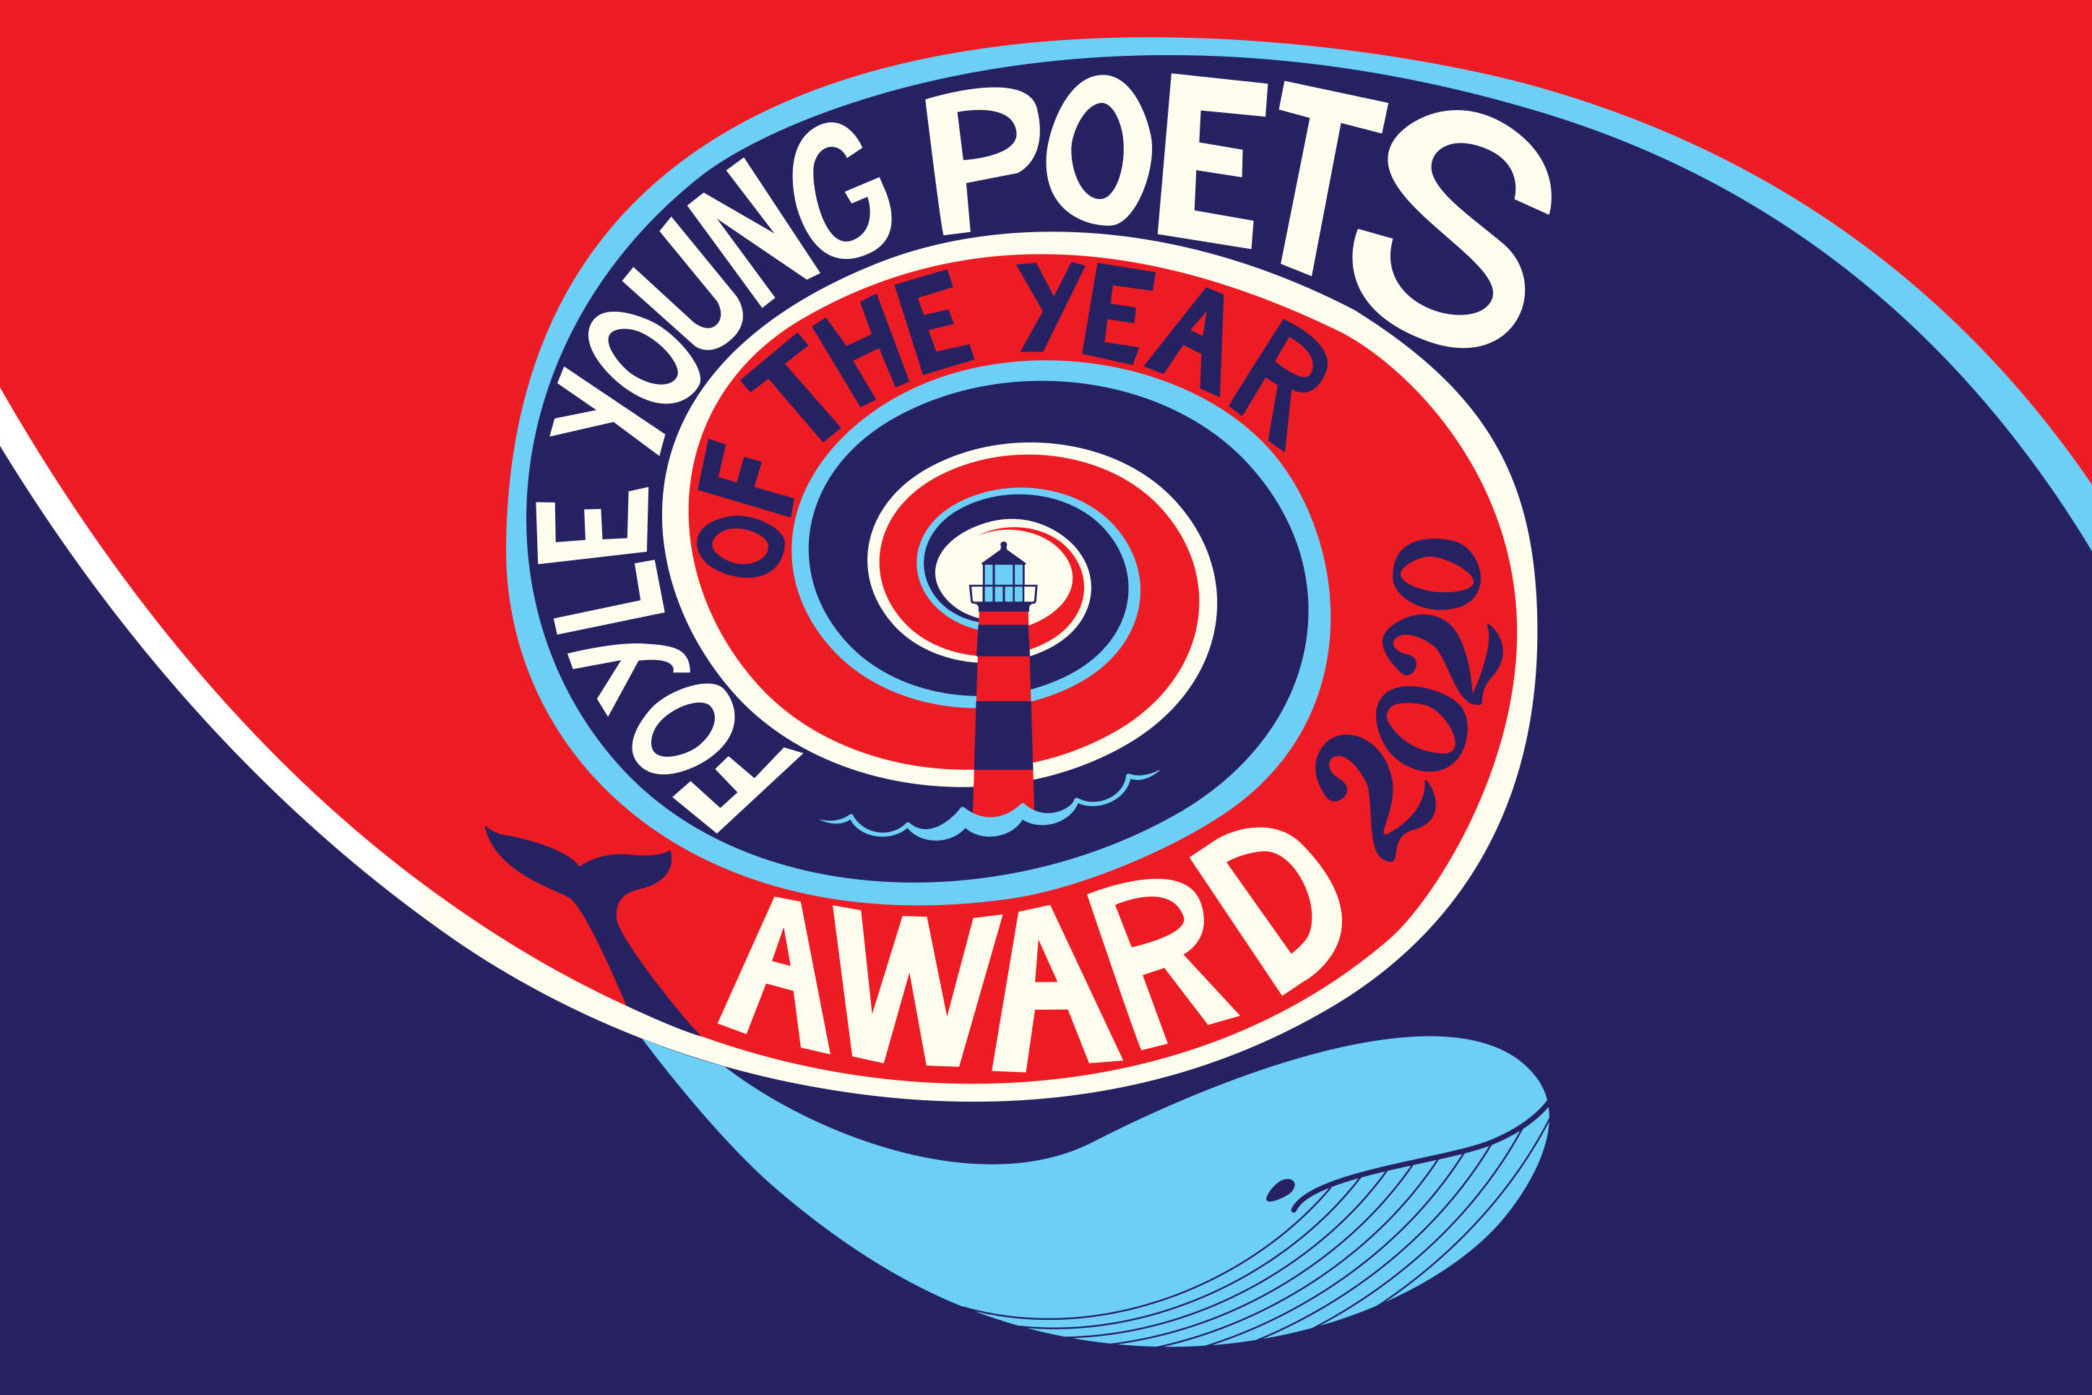 Foyle Young Poets